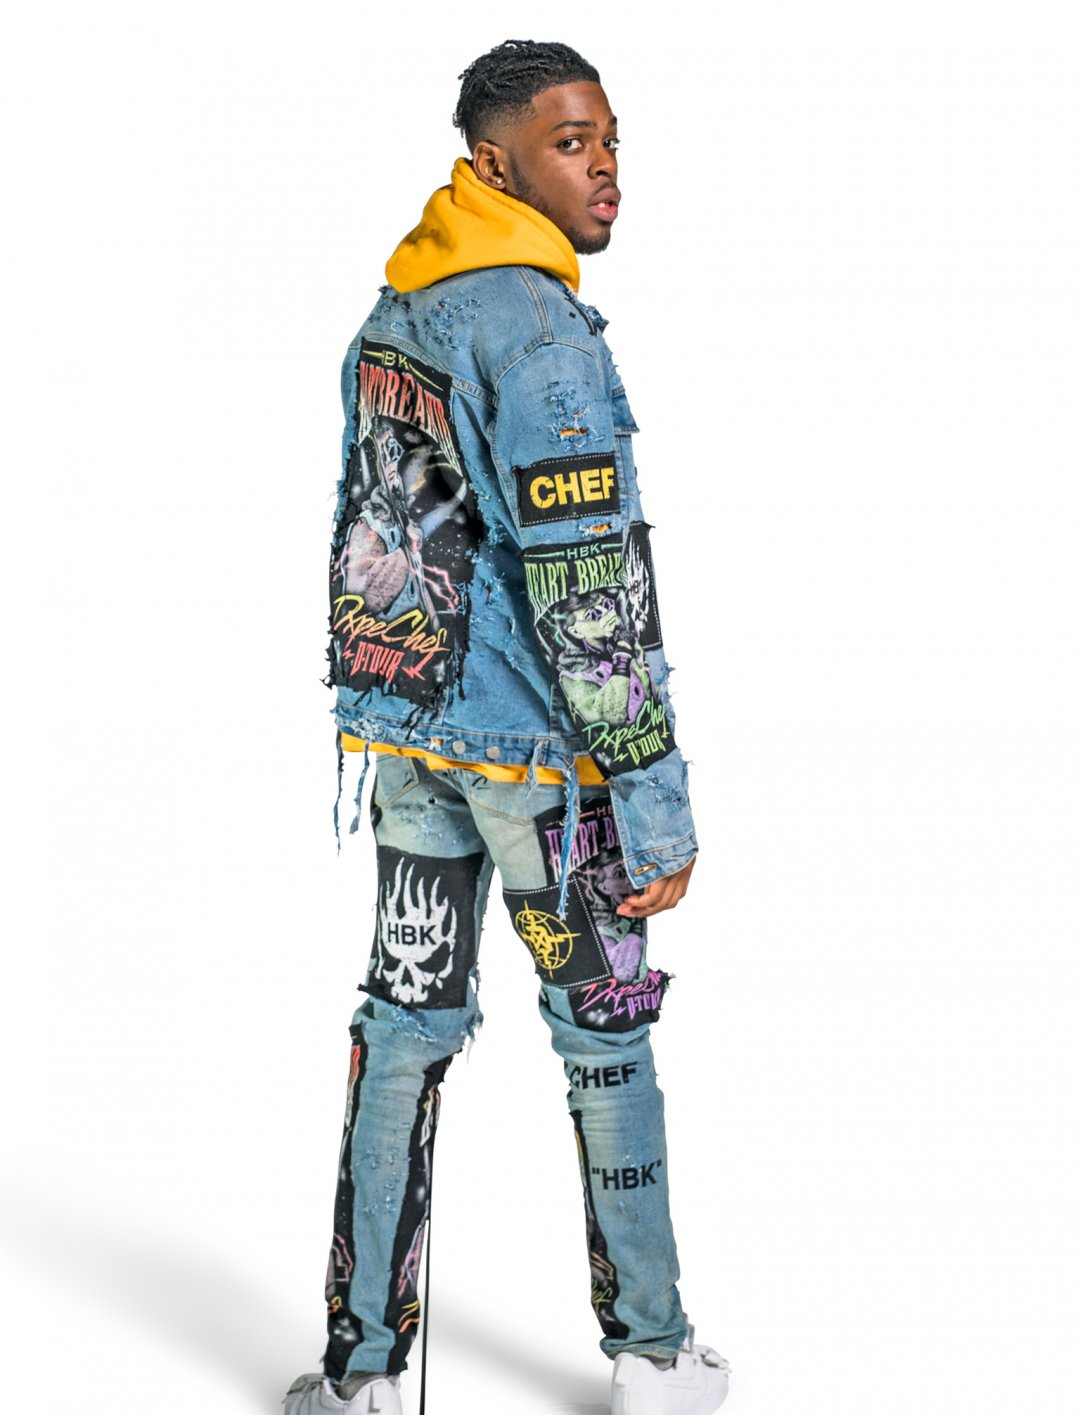 Yxng Bane's HBK Denim Jacket Clothing Dxpe Chef